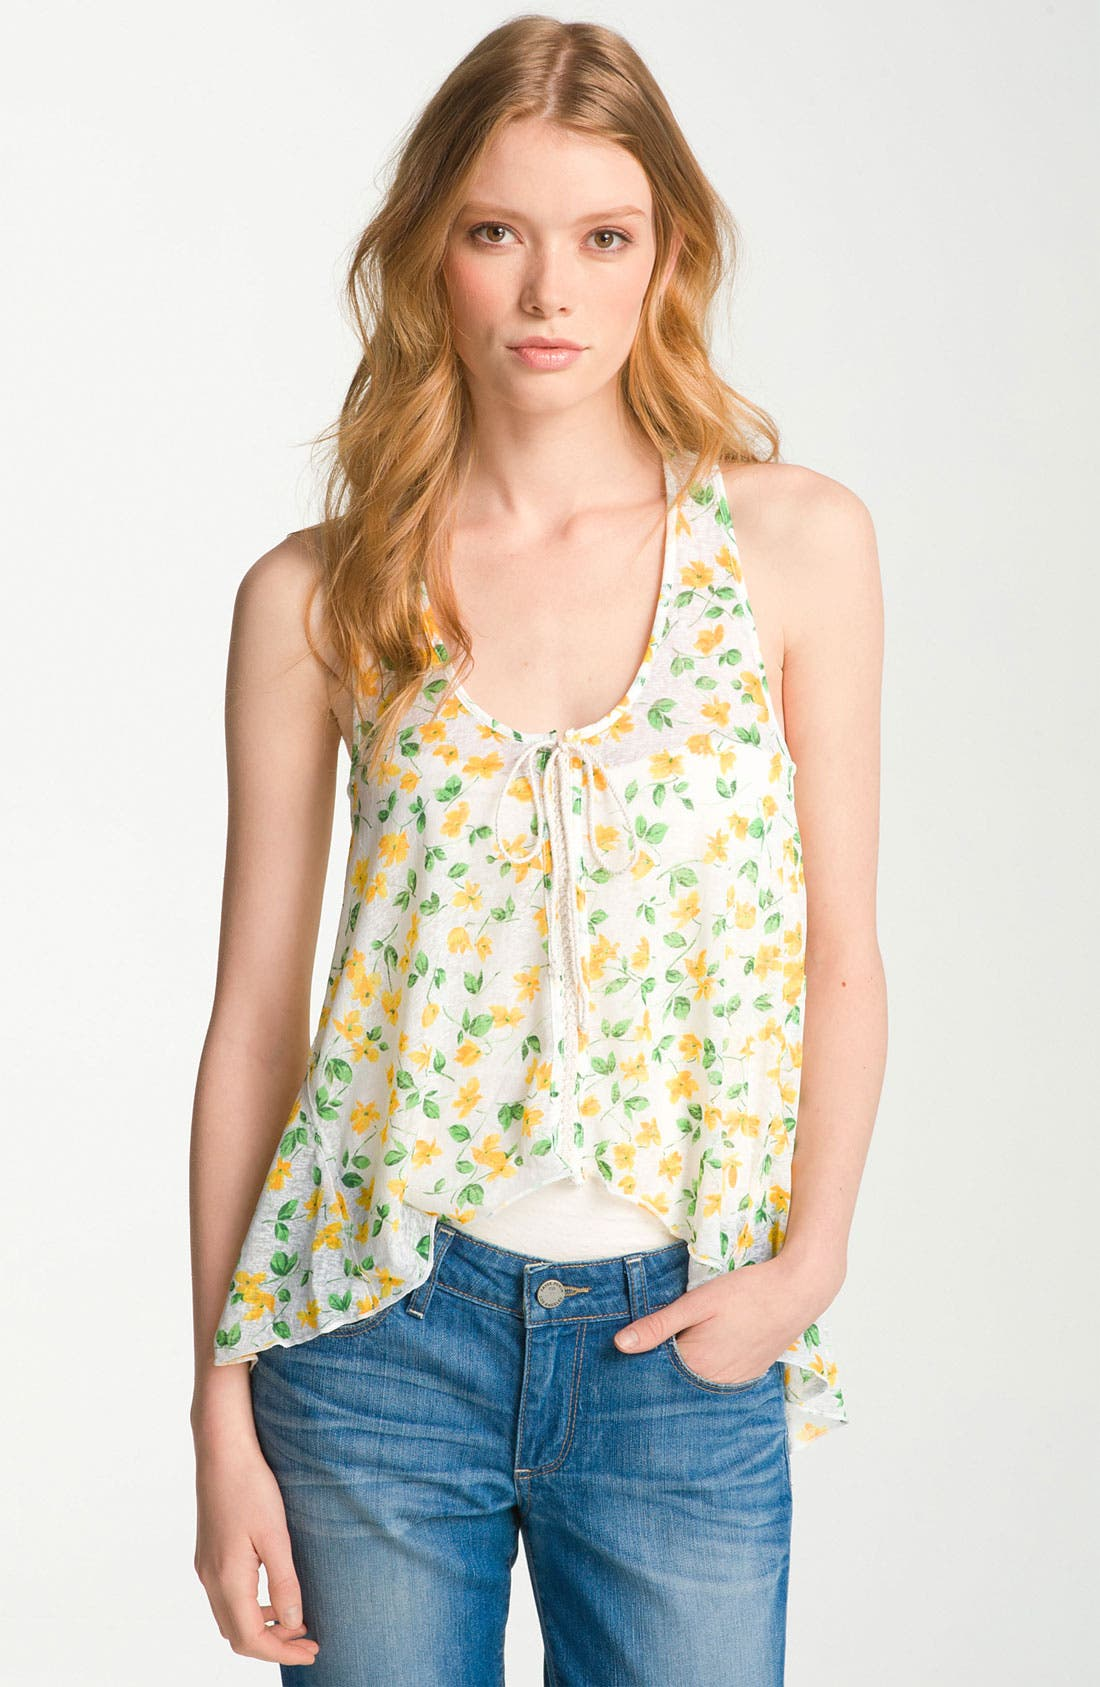 Alternate Image 1 Selected - Free People 'Izzy' Print Crochet Back Flyaway Tank